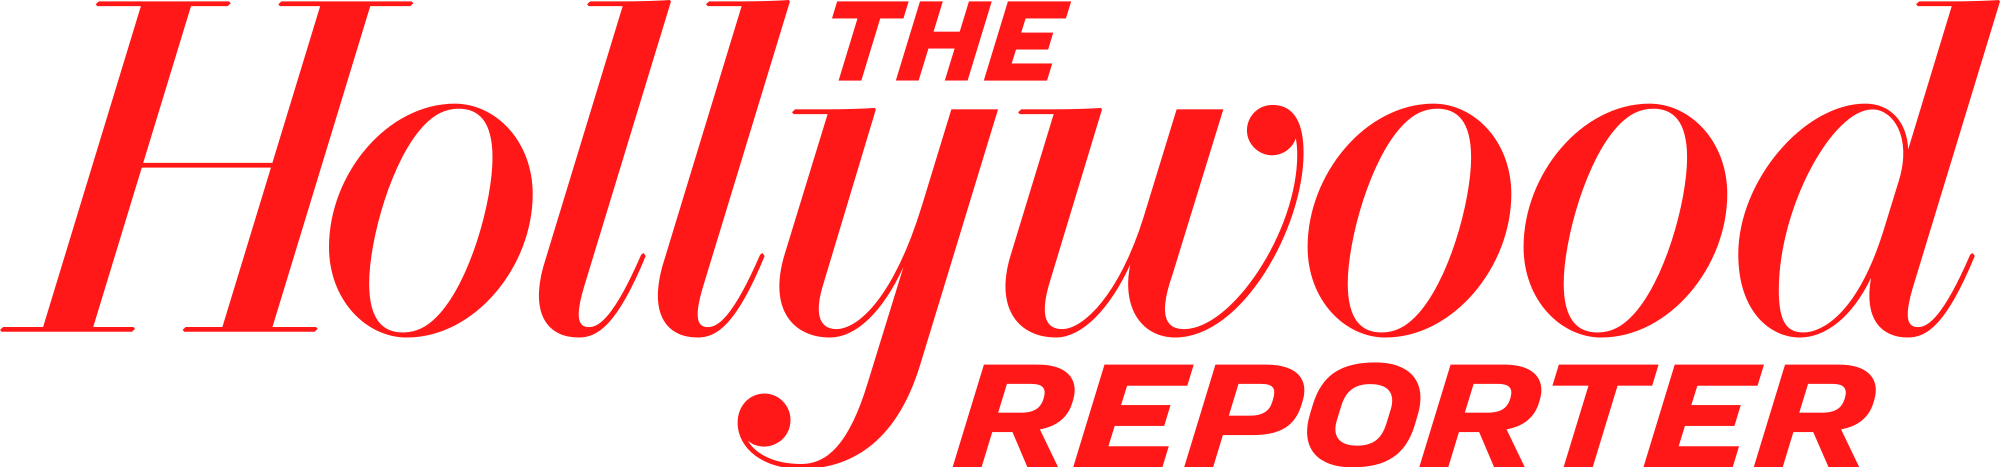 2000px-The_Hollywood_Reporter_logo.svg.p